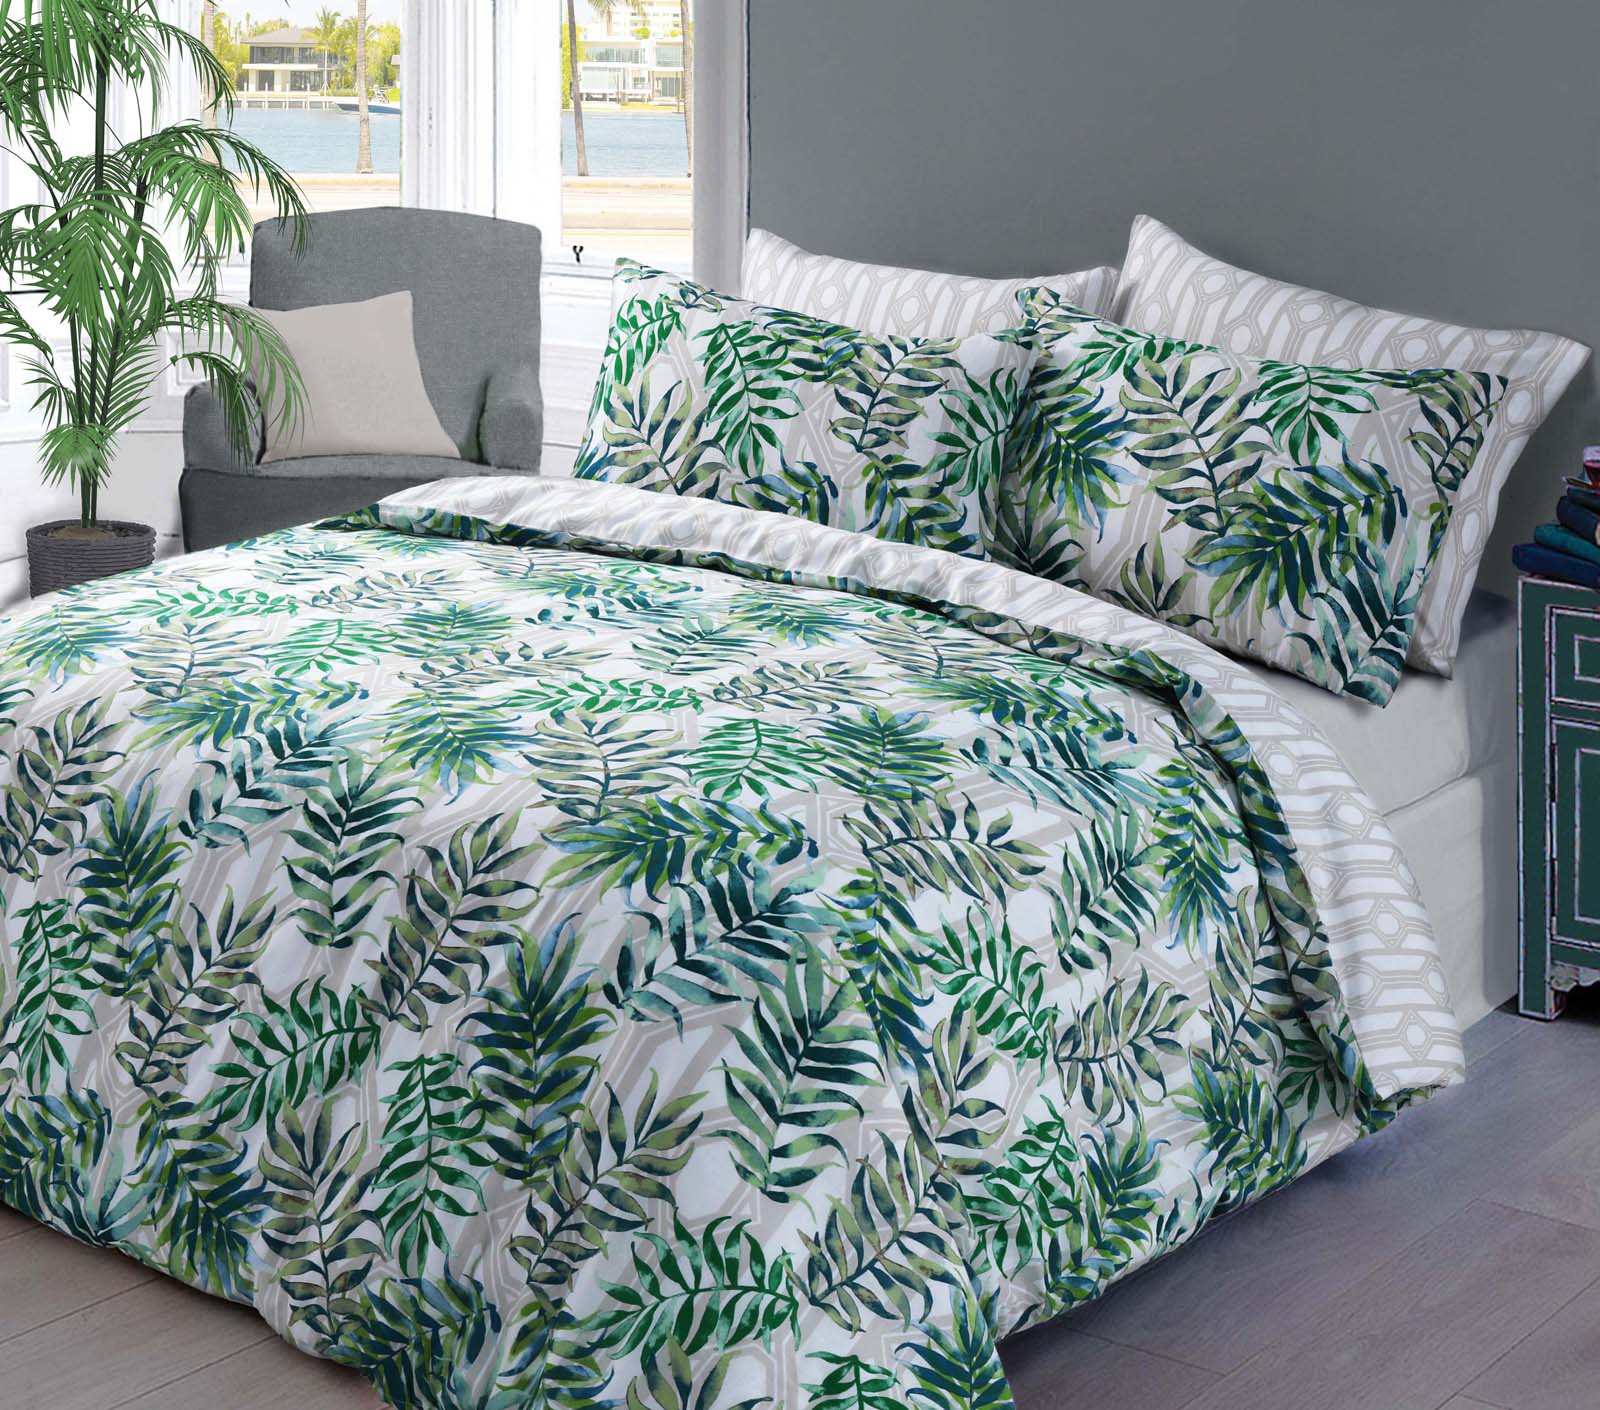 Palm Leaf Duvet Cover Set Wholesale Bedding Store De